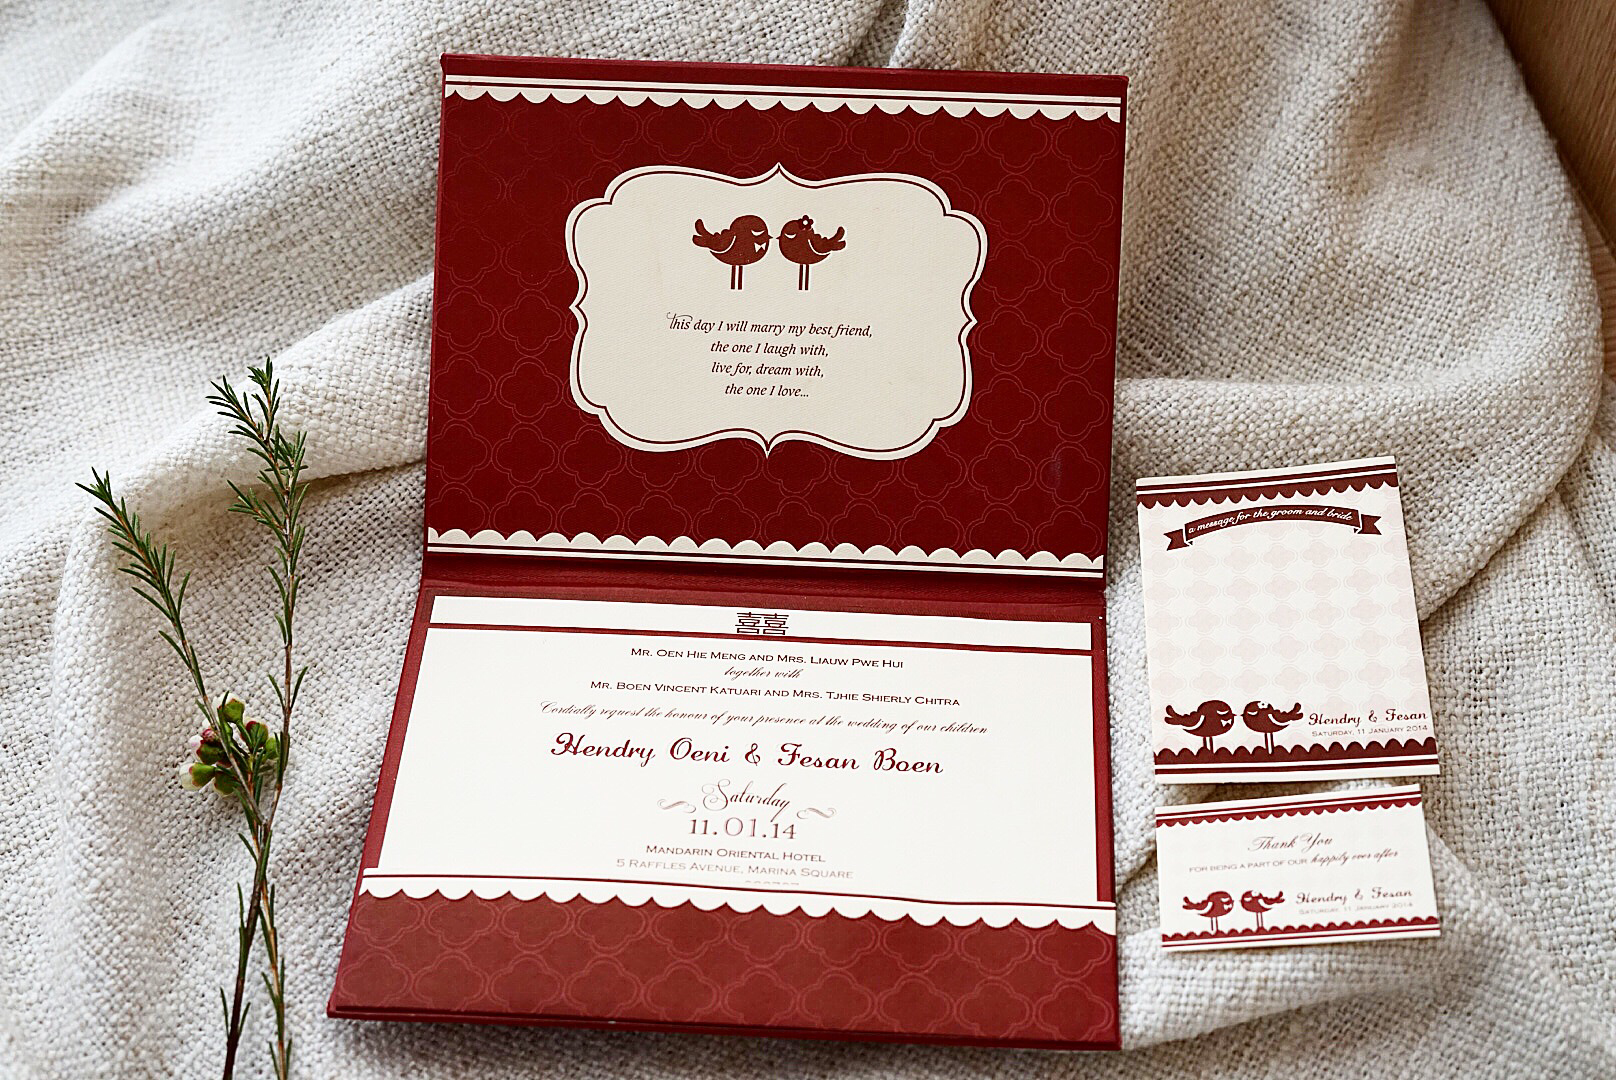 Directory of Wedding Invitations Vendors in Jakarta | Bridestory.com